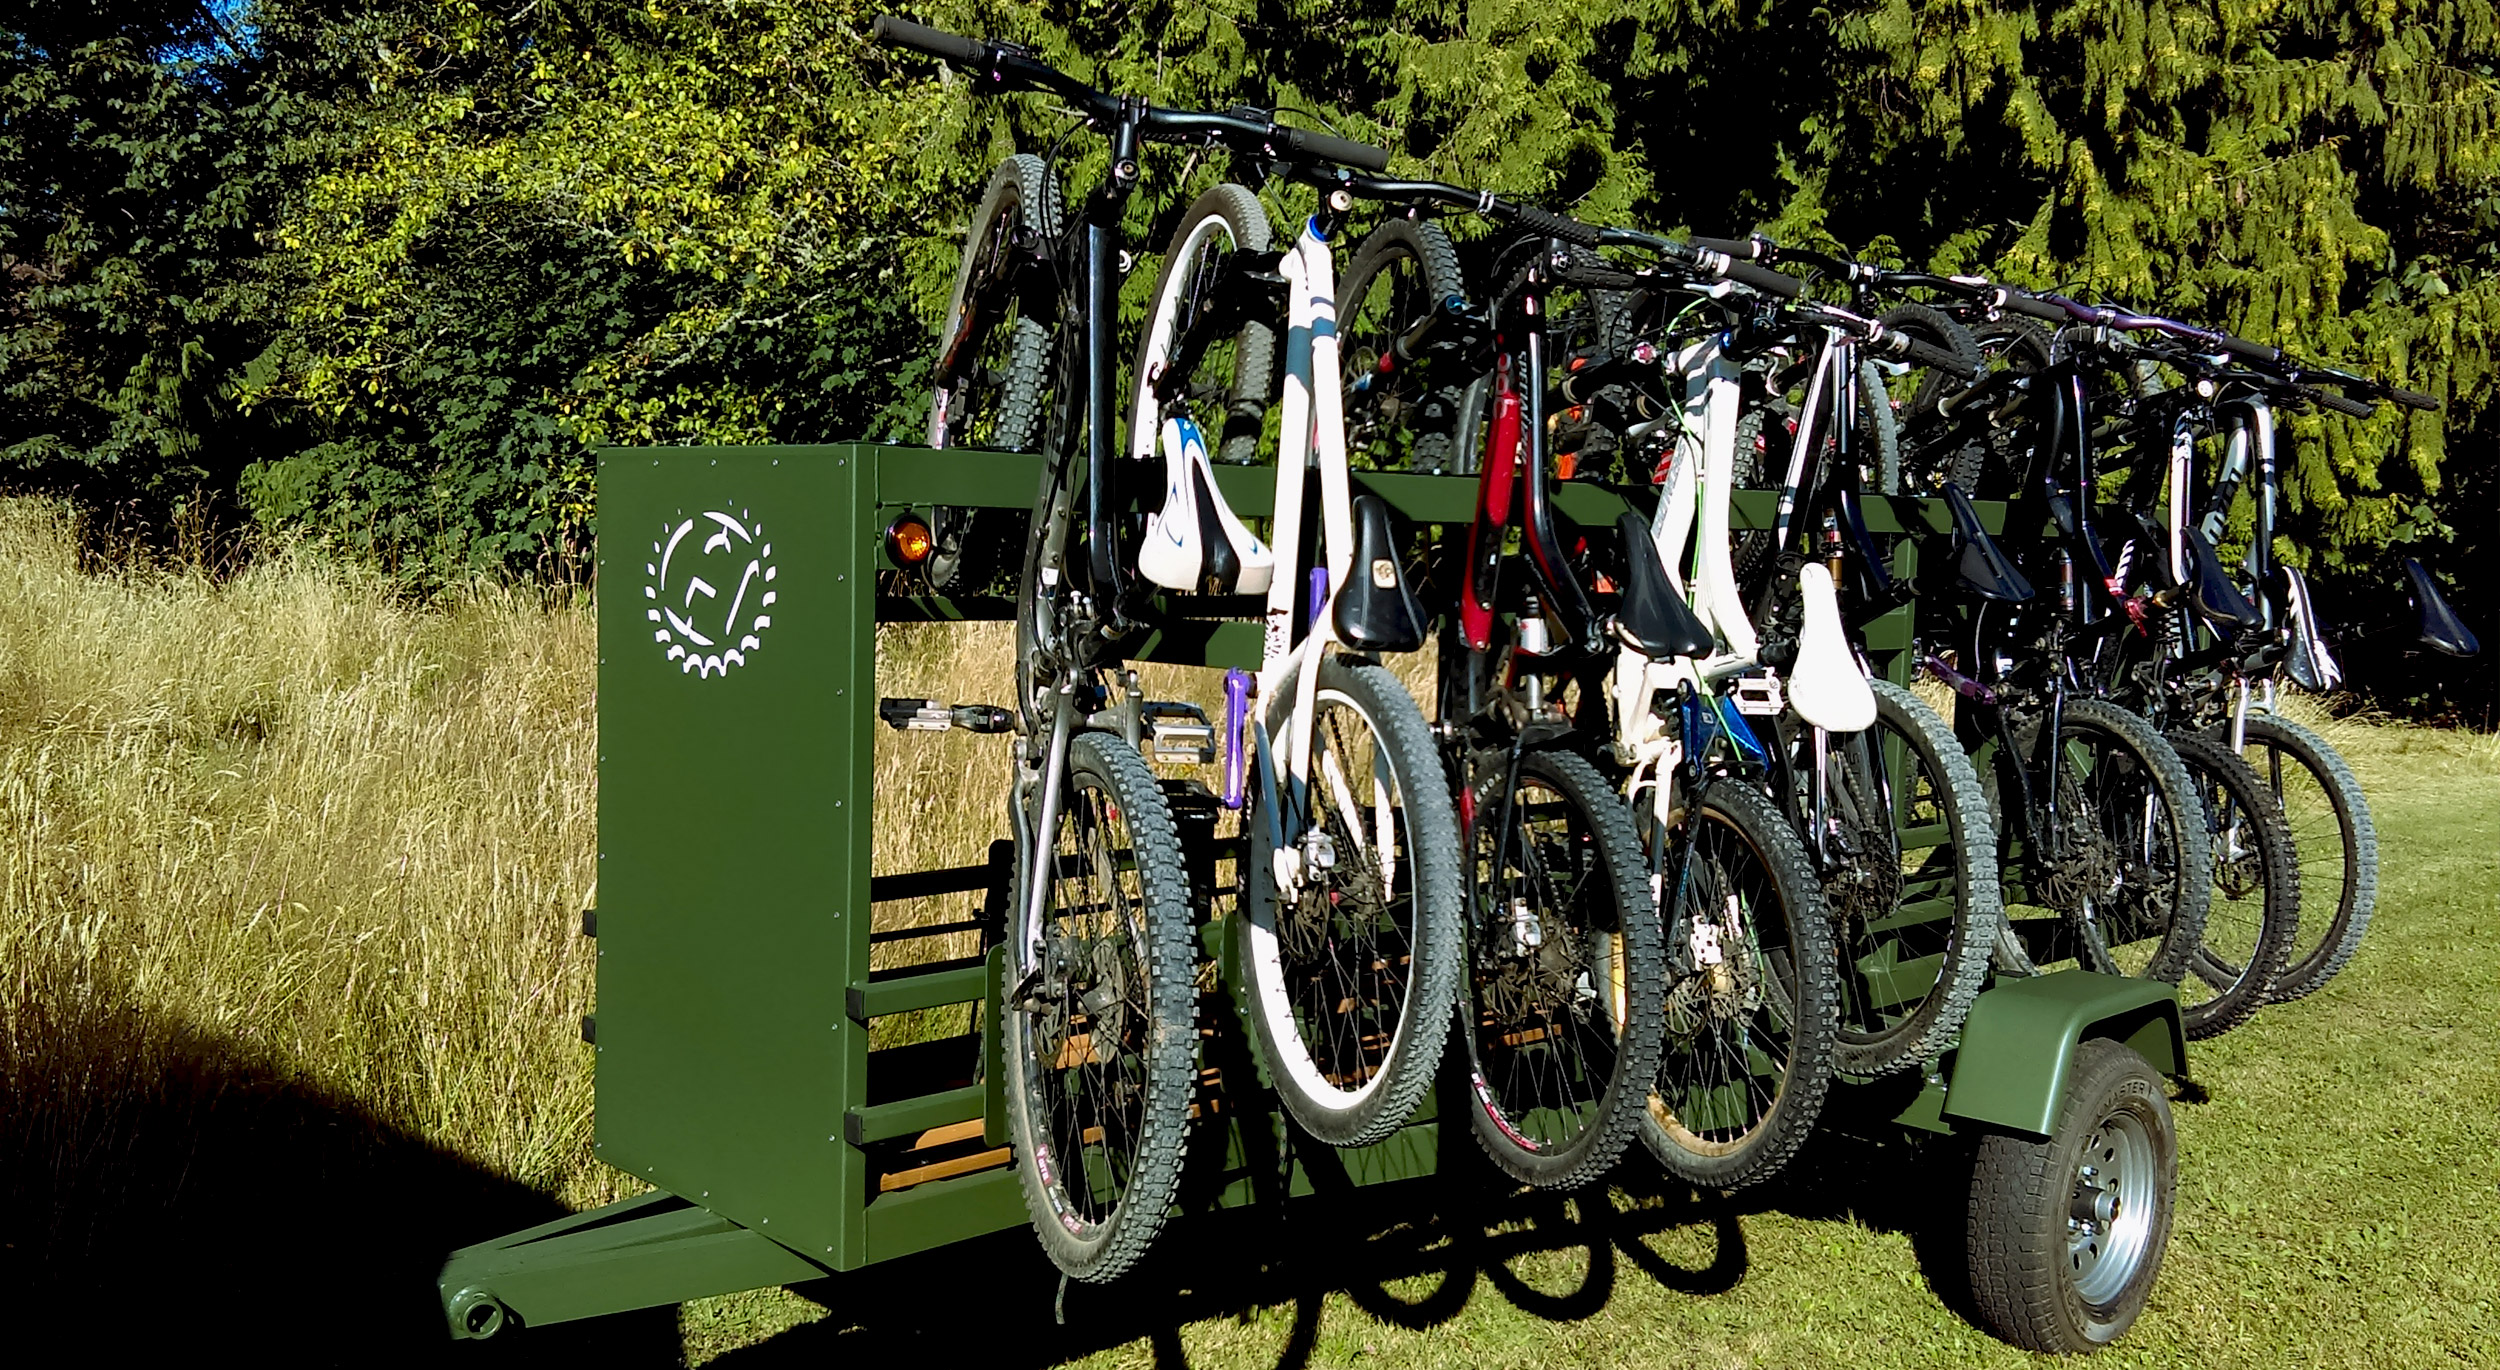 Medium Huckwagons Mountain Bike Shuttle Trailers customizable to your bike transport needs